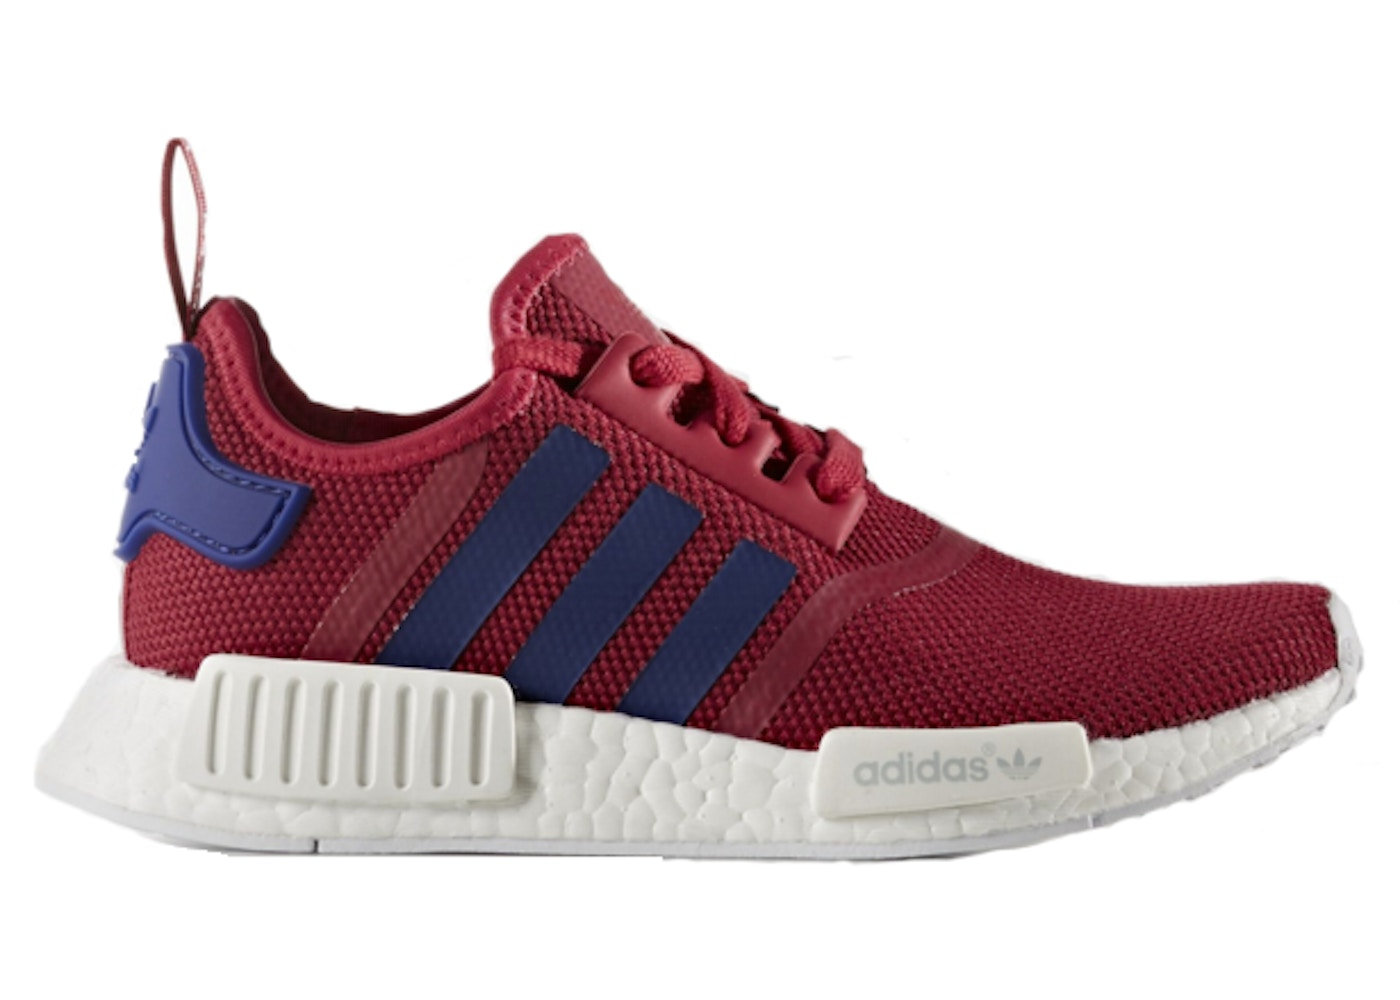 new style 78892 0bbb2 adidas NMD R1 Unity Pink (GS)